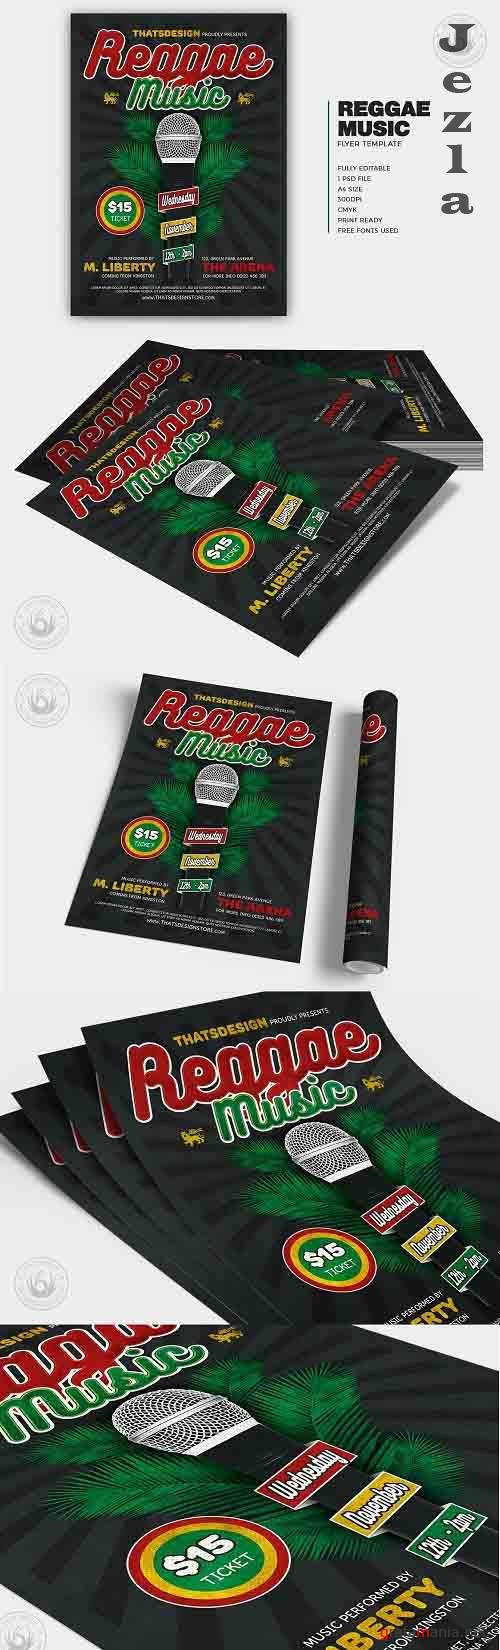 Reggae Music Flyer Template V3 - 5996804